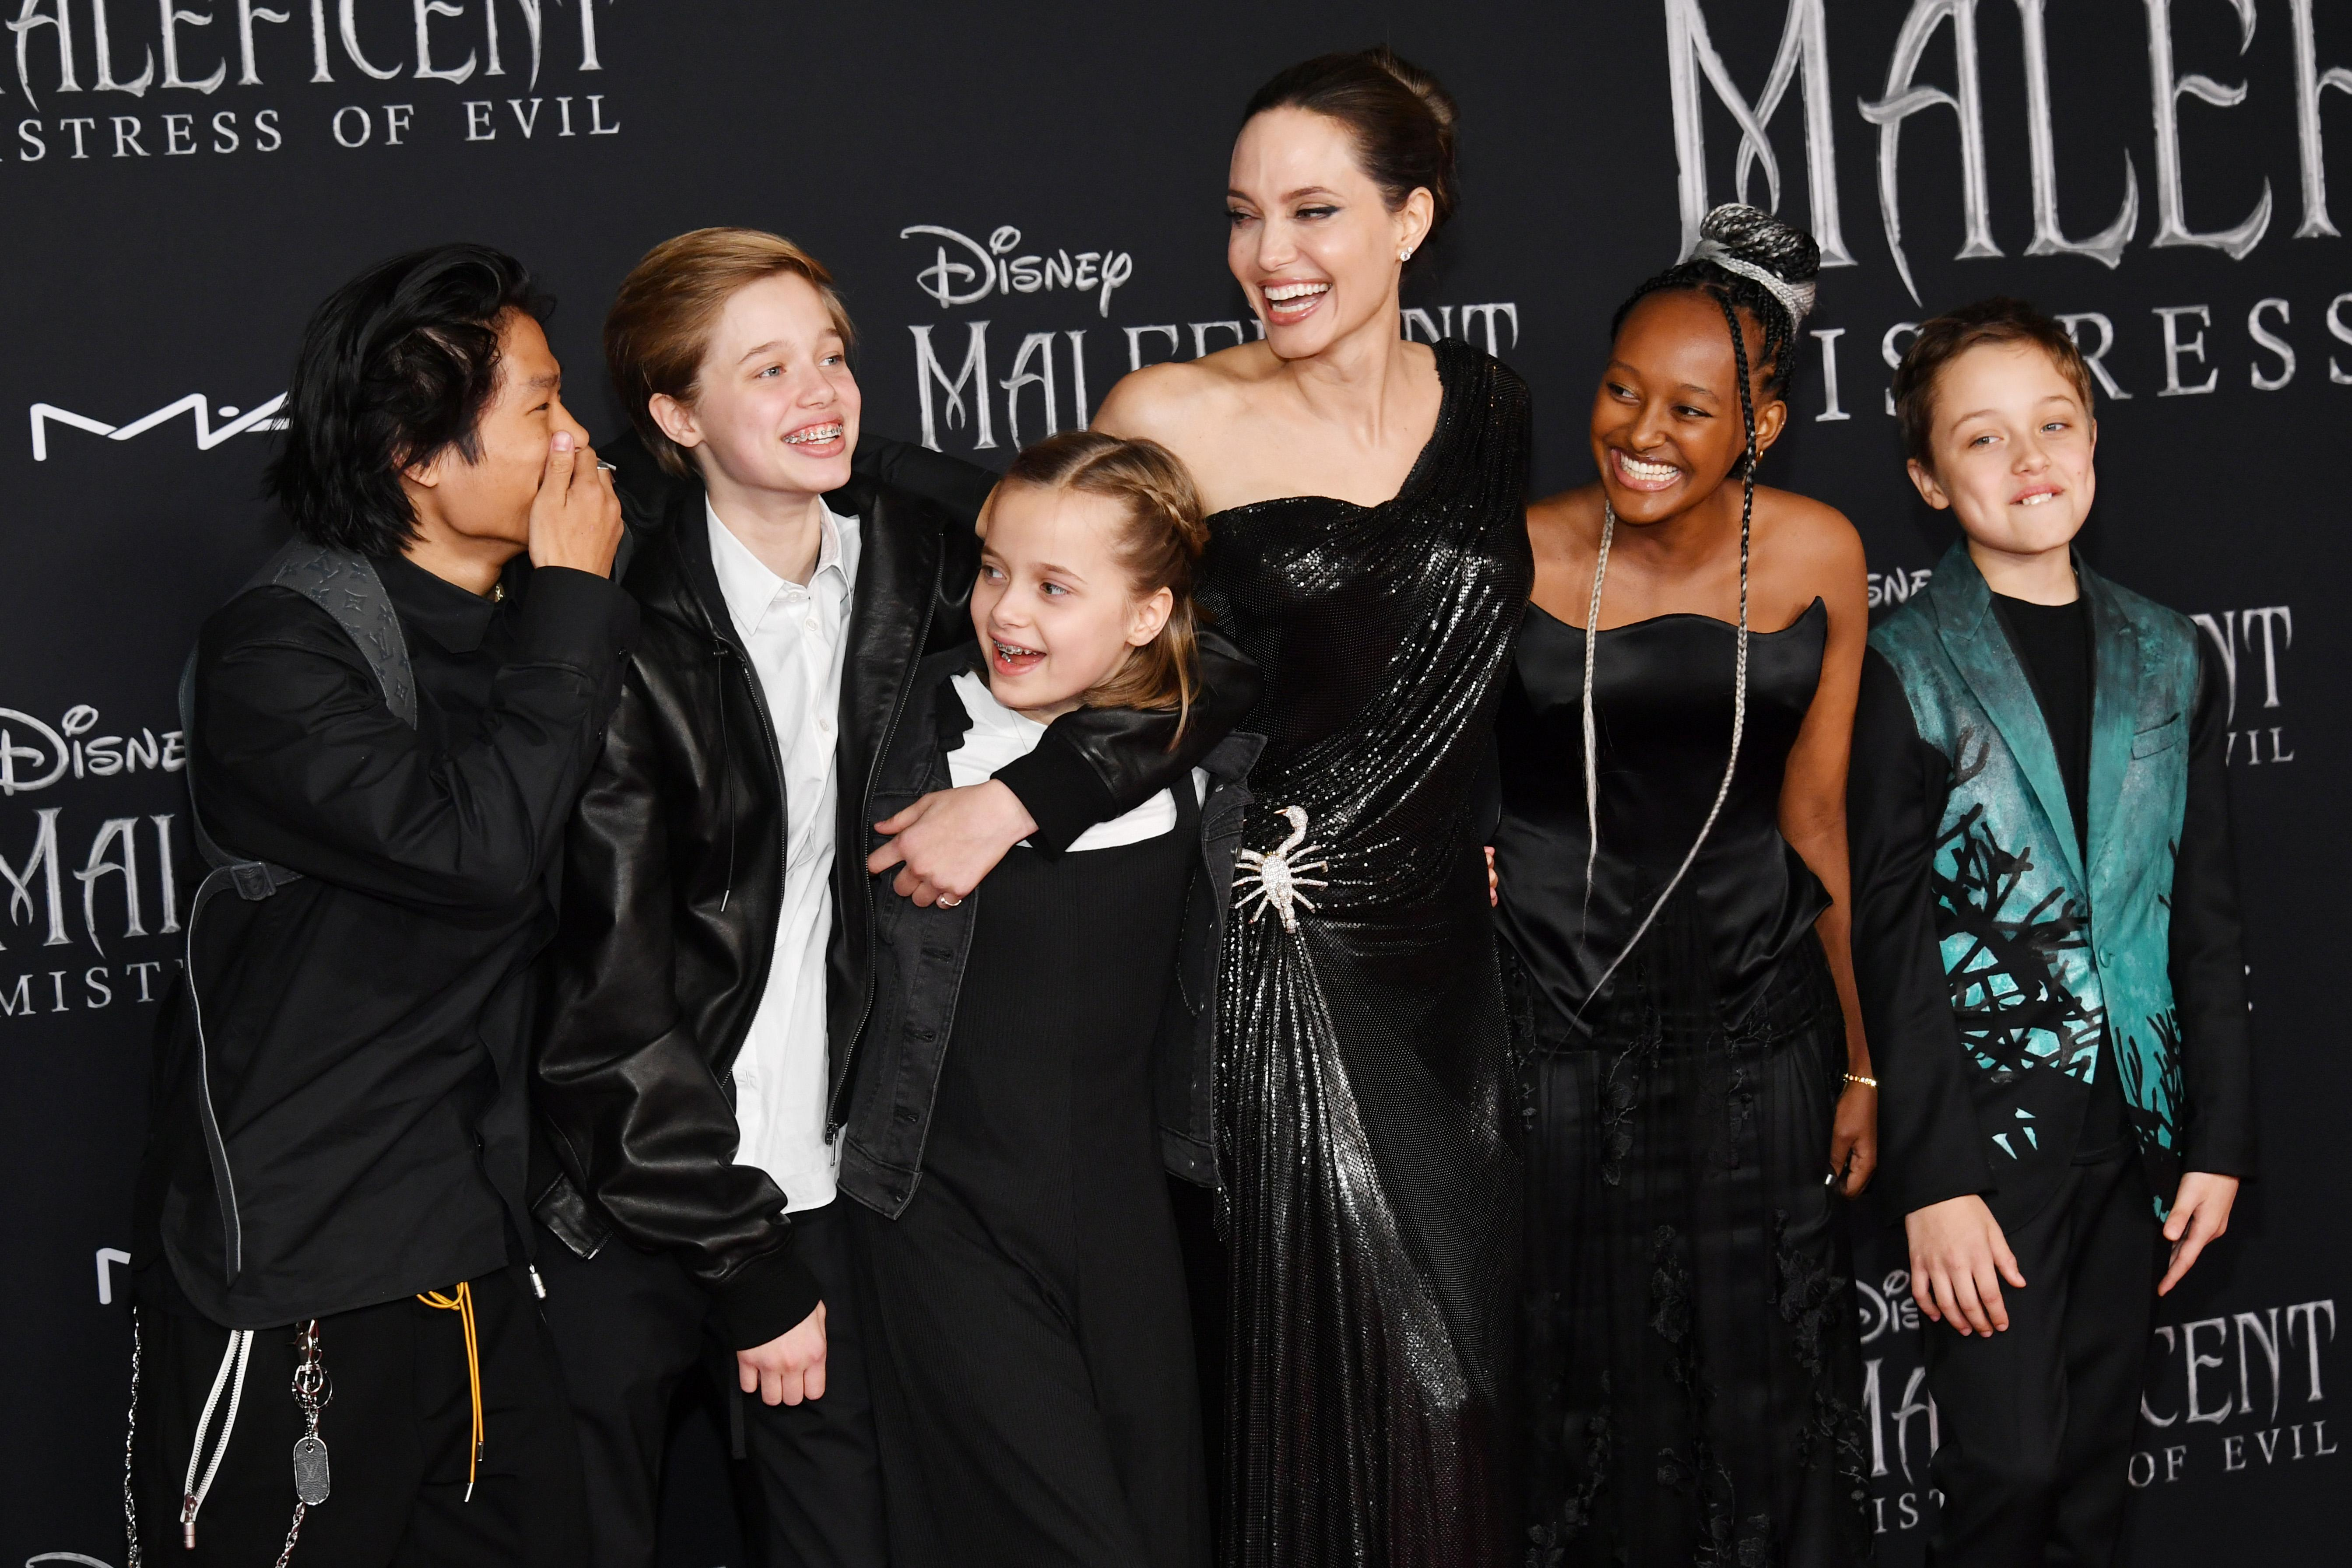 Pax Thien Jolie-Pitt, Shiloh Nouvel Jolie-Pitt, Vivienne Marcheline Jolie-Pitt, Angelina Jolie, Zahara Marley Jolie-Pitt, and Knox Léon Jolie-Pitt attend the world premiere of Disney's 'Maleficent: Mistress Of Evil' at El Capitan Theatre on September 30, 2019 in Los Angeles, California [Photo: Getty]